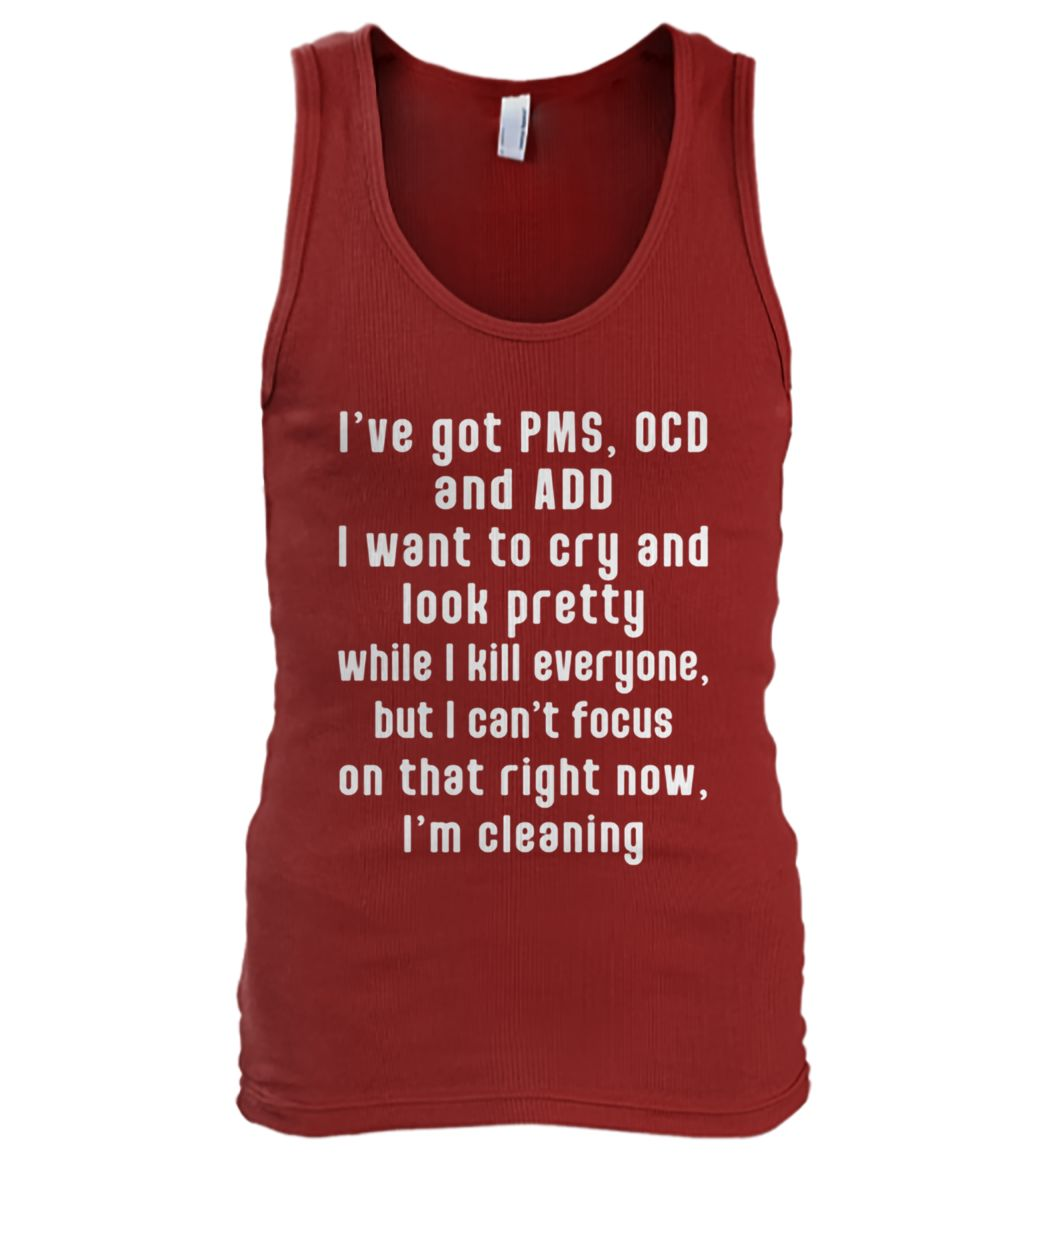 I have pms ocd and add I want to cry and look pretty men's tank top